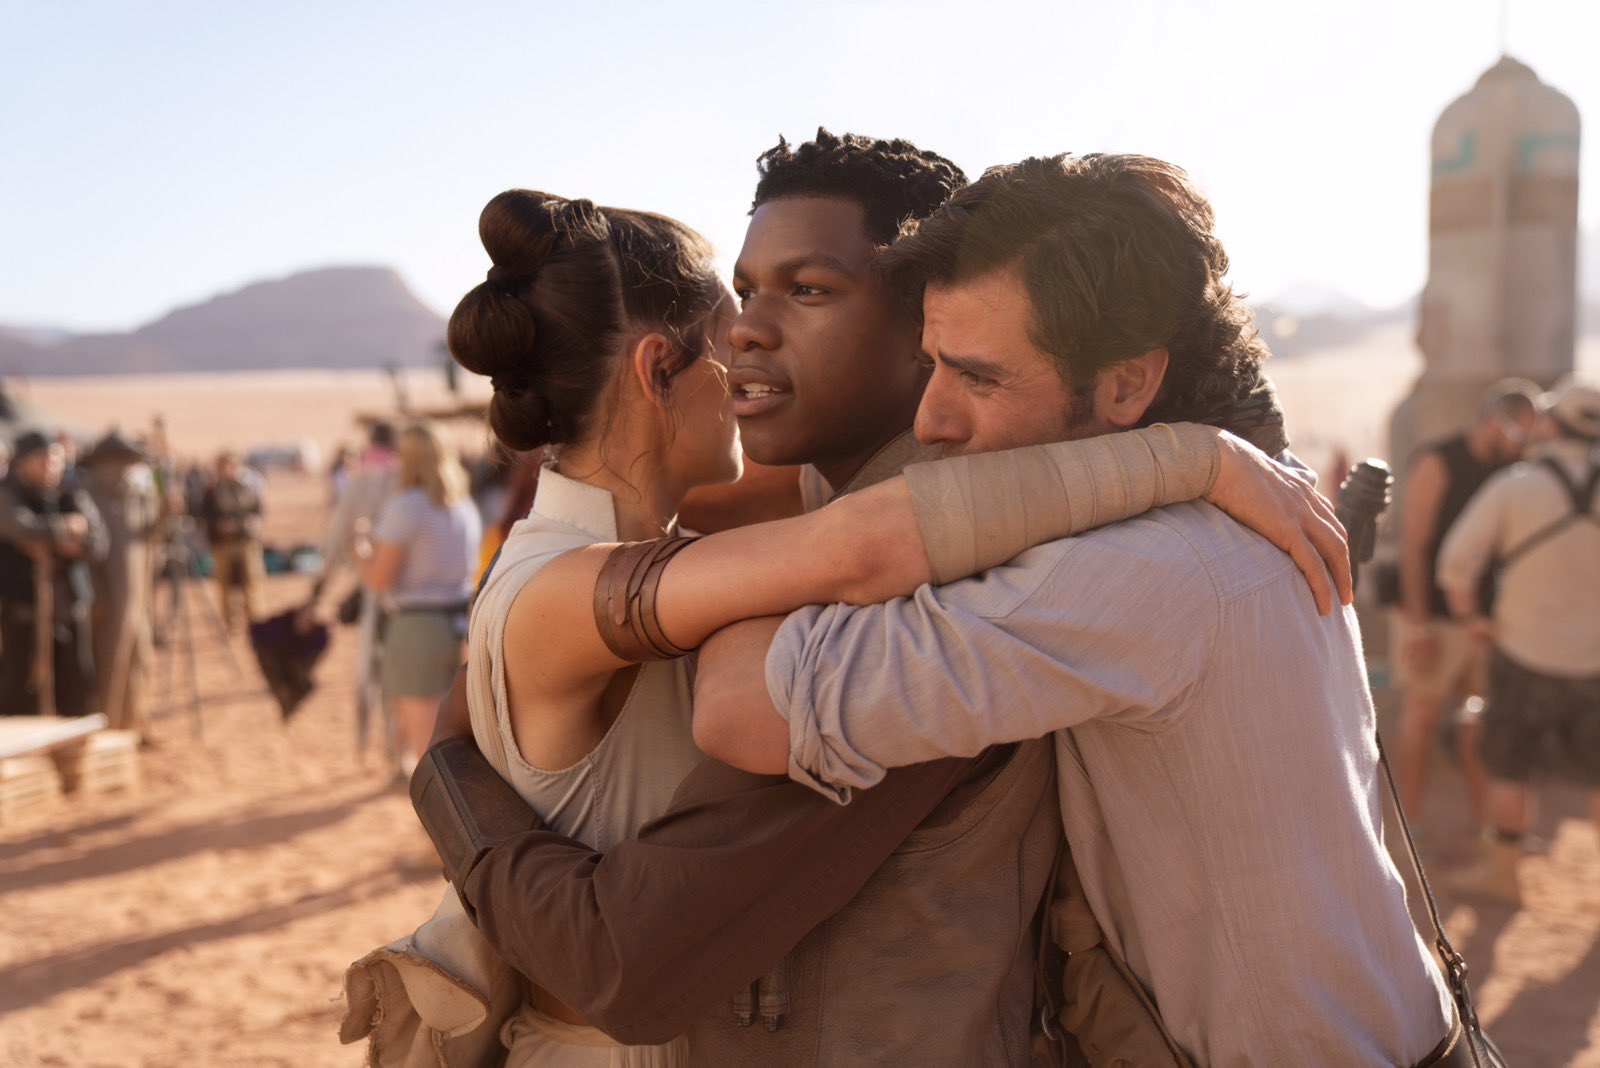 Star Wars Episode IX wraps